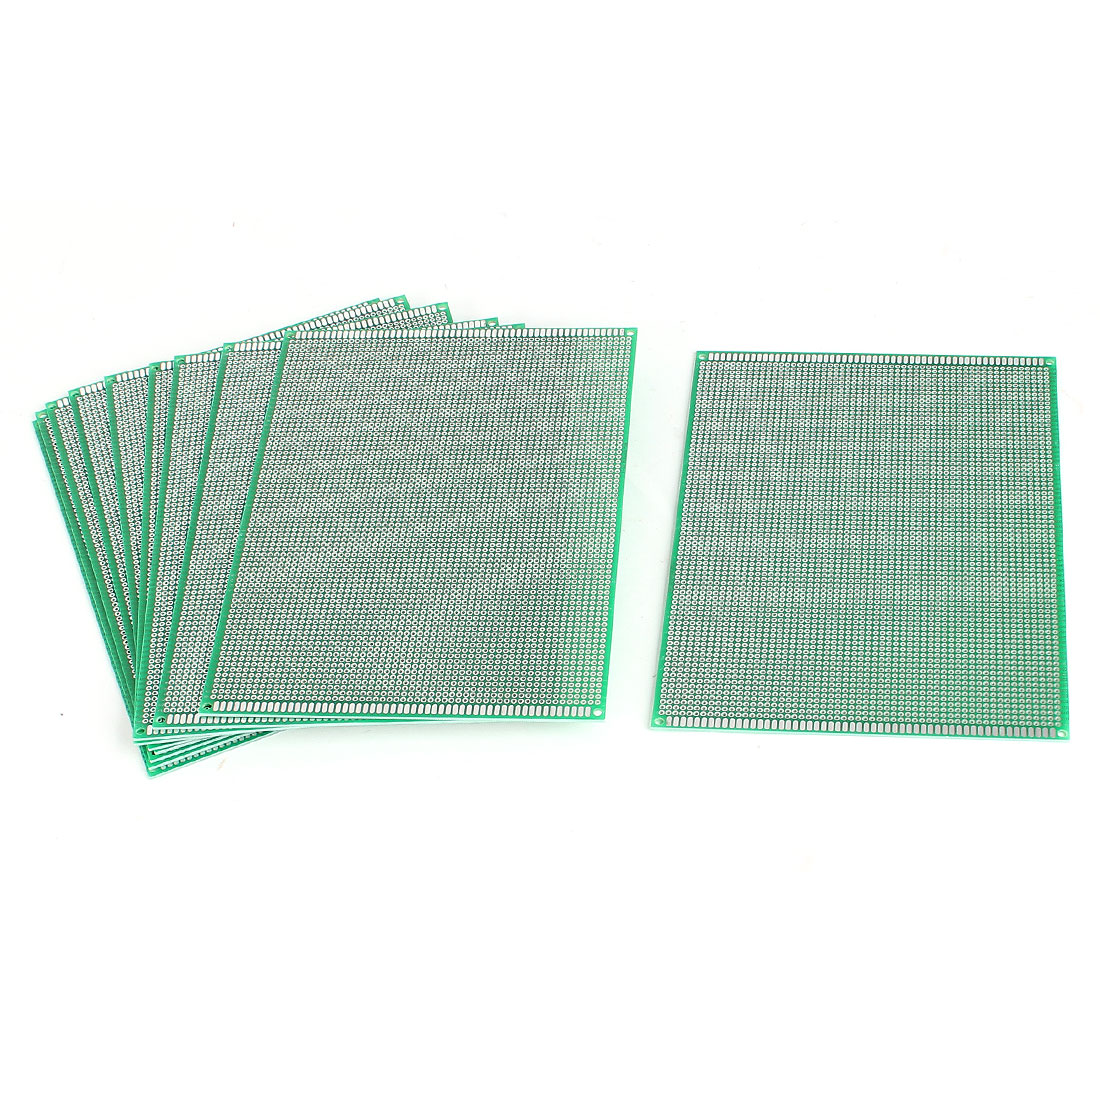 10 Pcs DIY Single Side Tinned Prototyping PCB Printed Circuit Universal Board 20cmx15cm